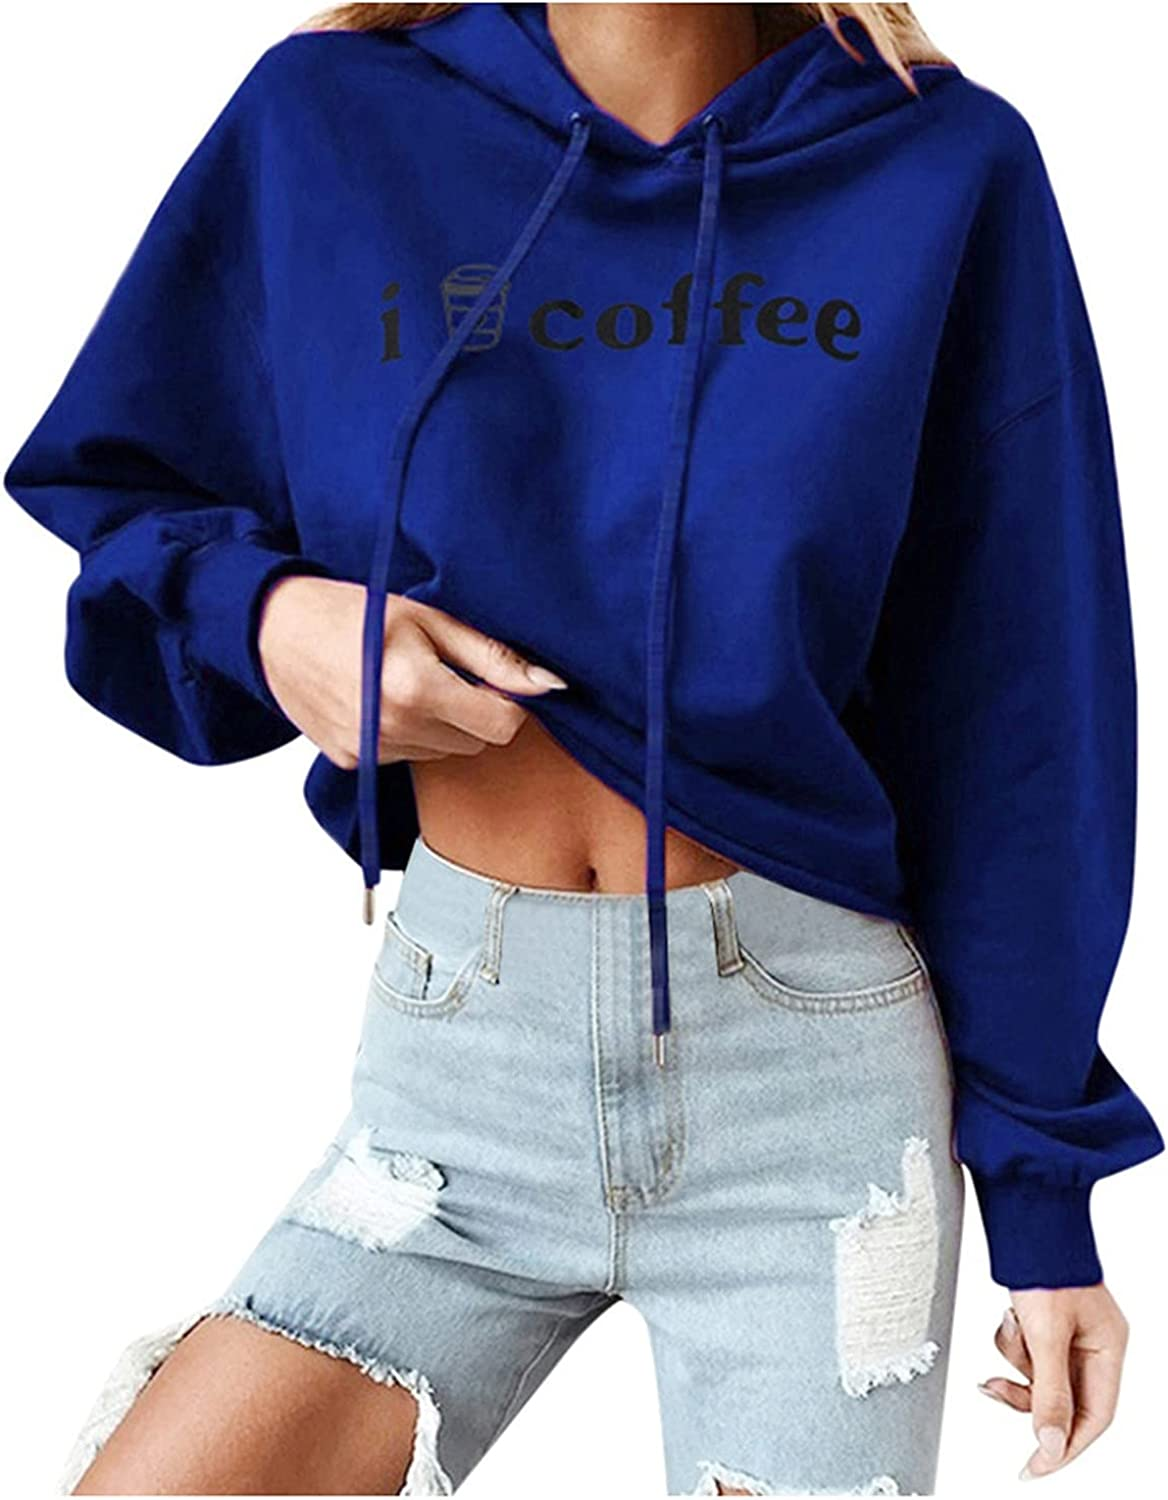 VonVonCo Fashion Pullover Sweaters for Women Print Long Sleeve Sweatshirt Hat Round Neck Tops Blouse